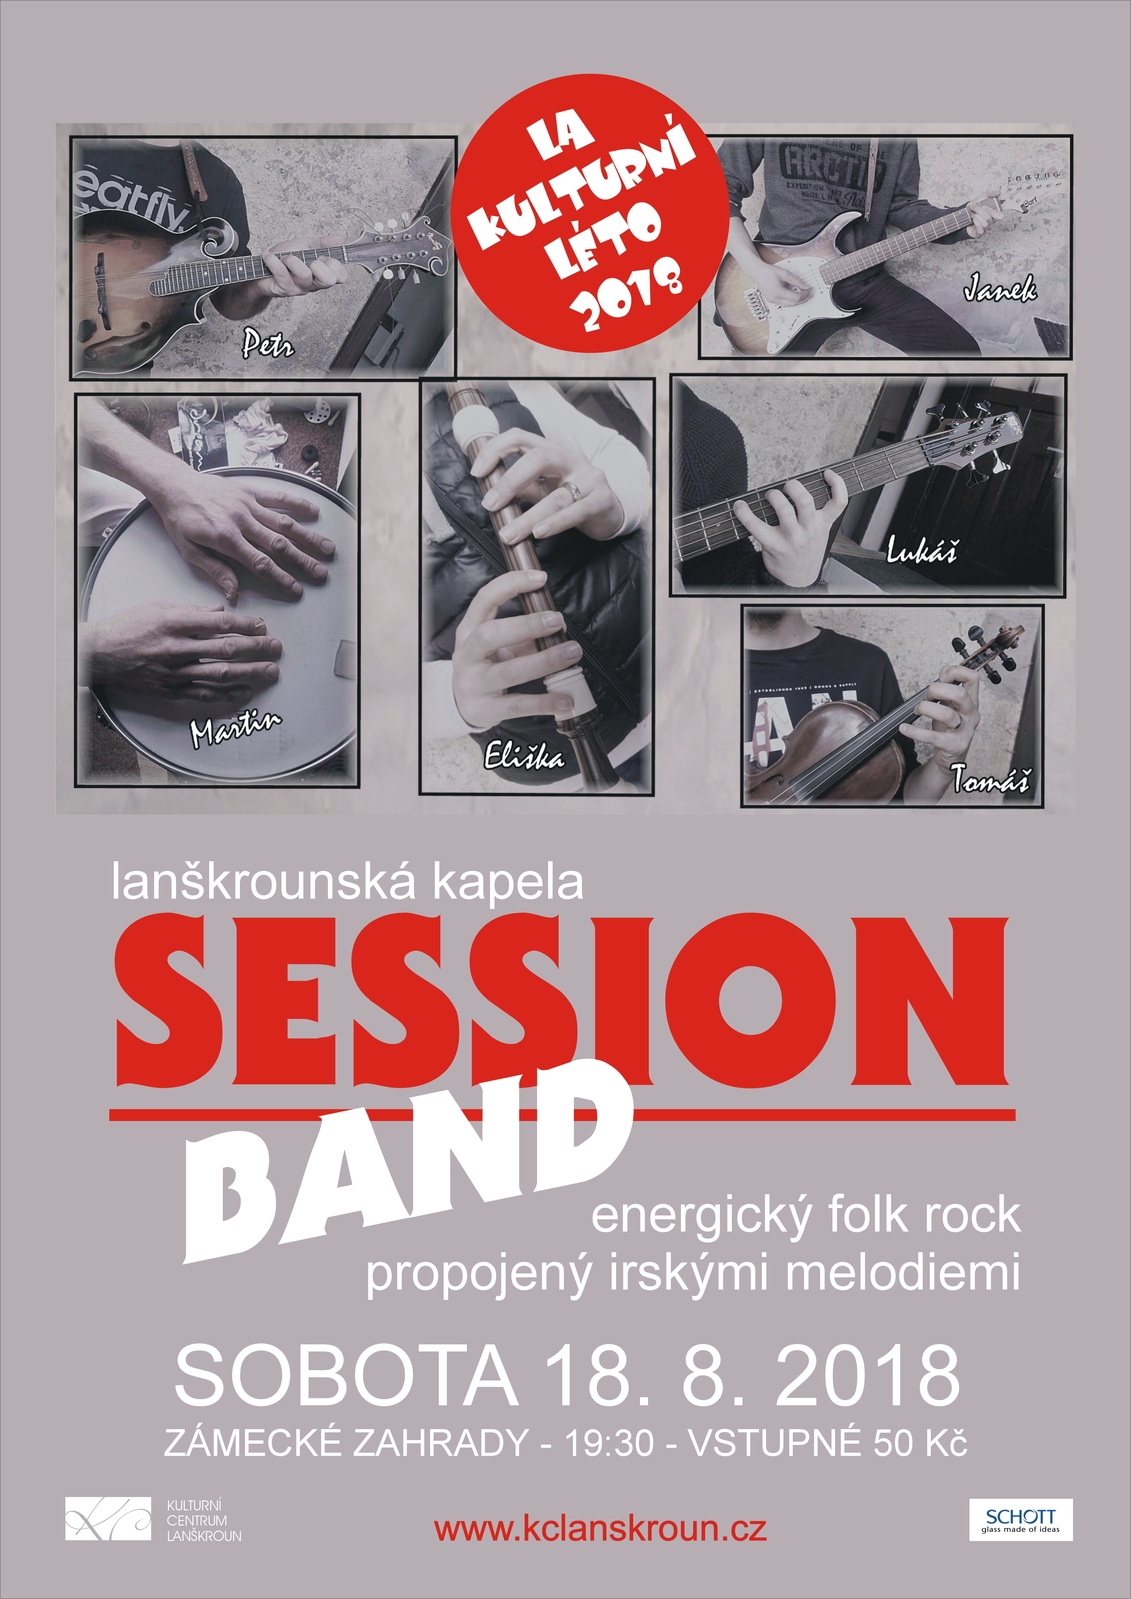 SESSION BAND 1k1.jpg